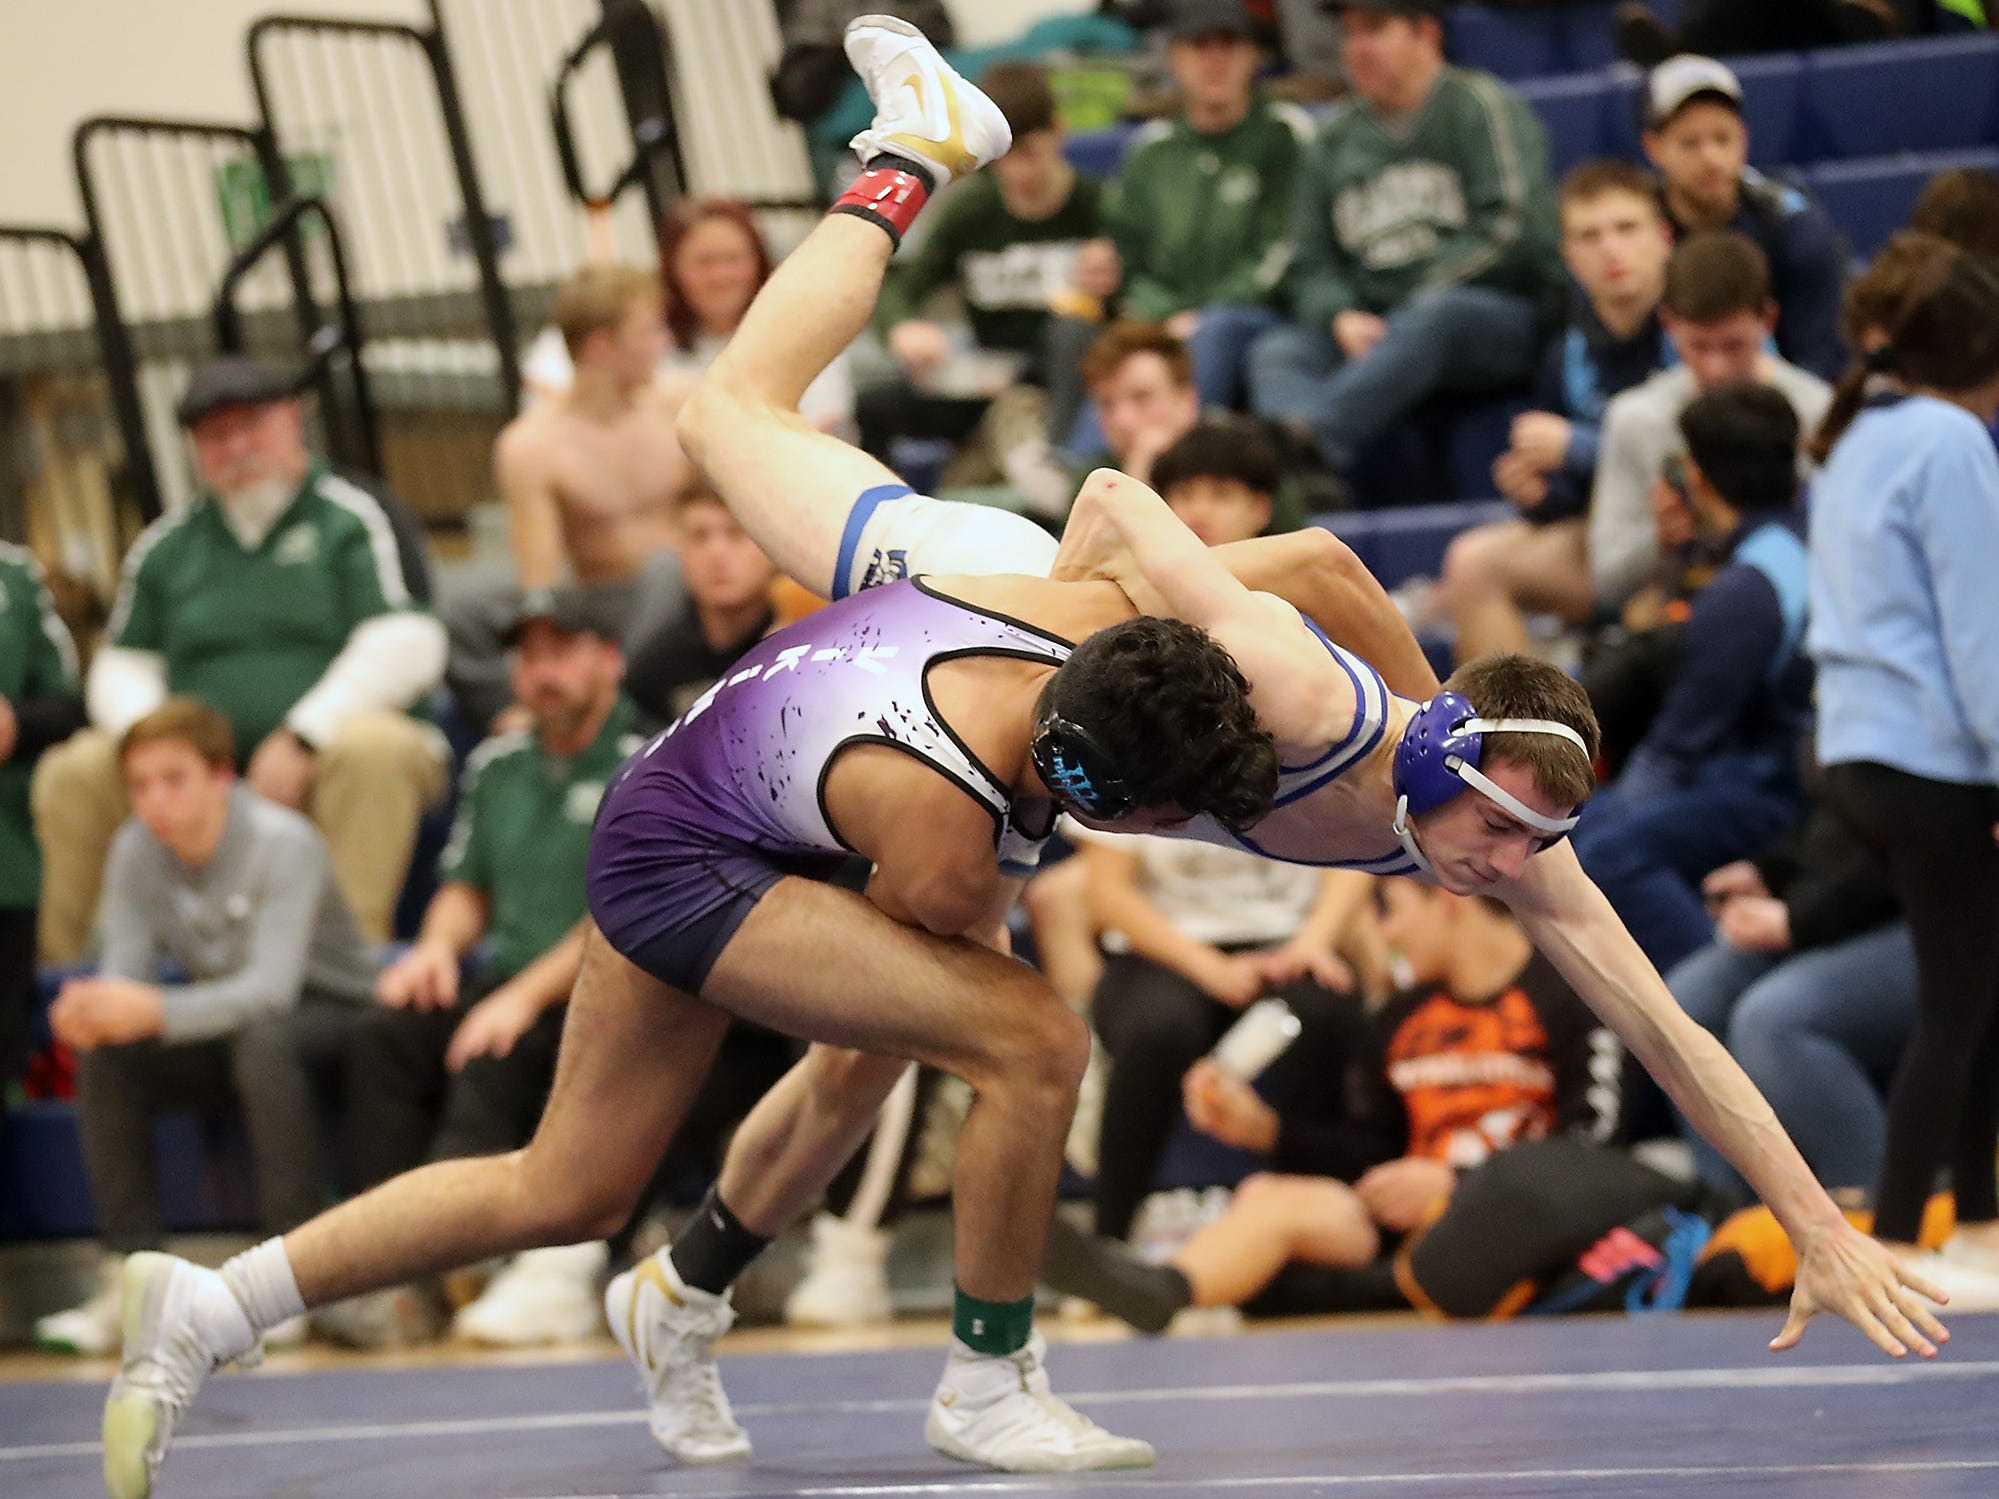 North Kitsap's Robert Gomez and Olympic's Tim Porter grapple for the first place finish in the 132-pound weight class at the North Mason Hawkins Memorial Wrestling Tournament in Belfair on Saturday, December 22, 2018.